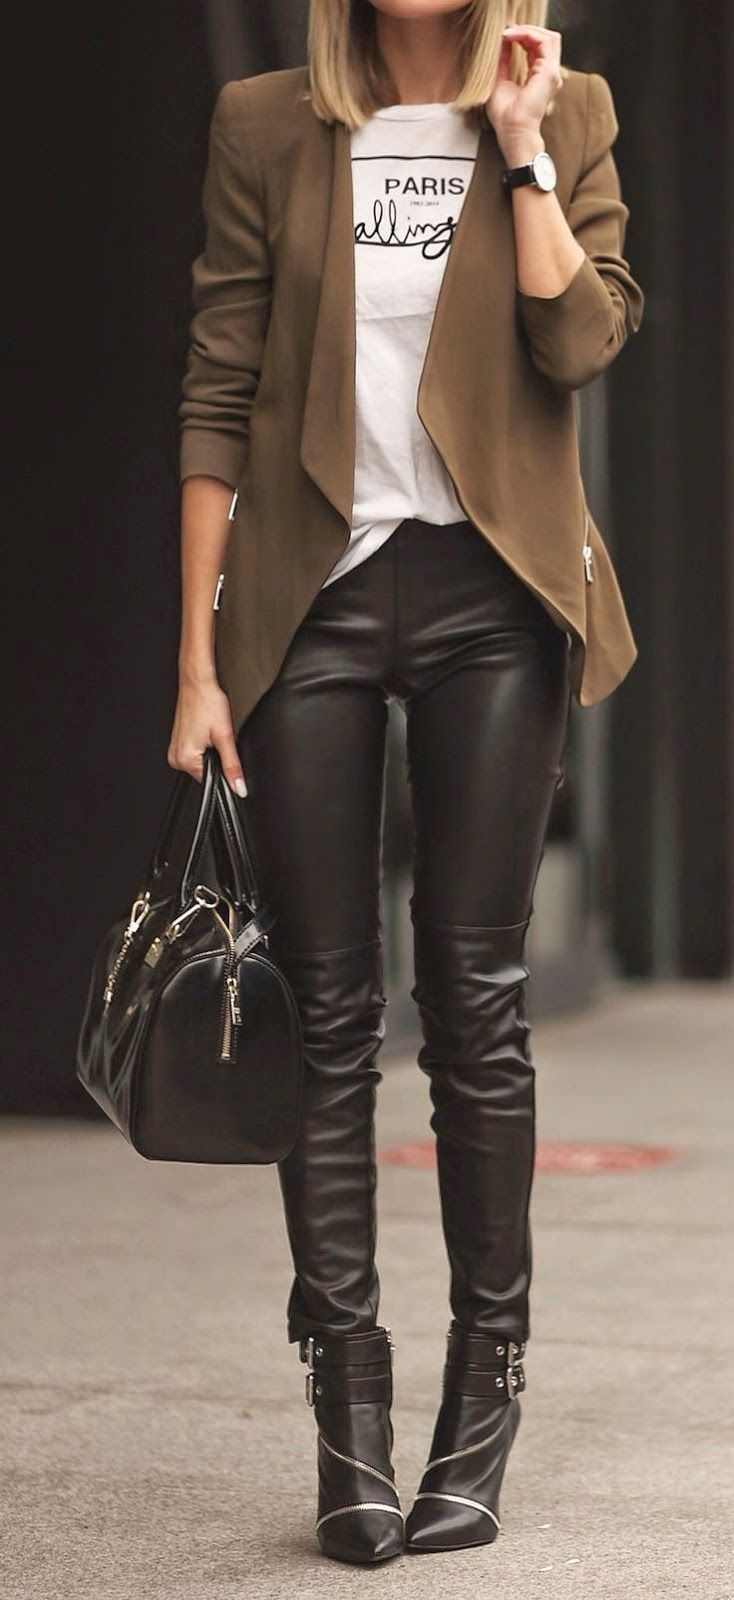 Black with brown may be a softer statement but she is rocking that classic look with a head turning combo.